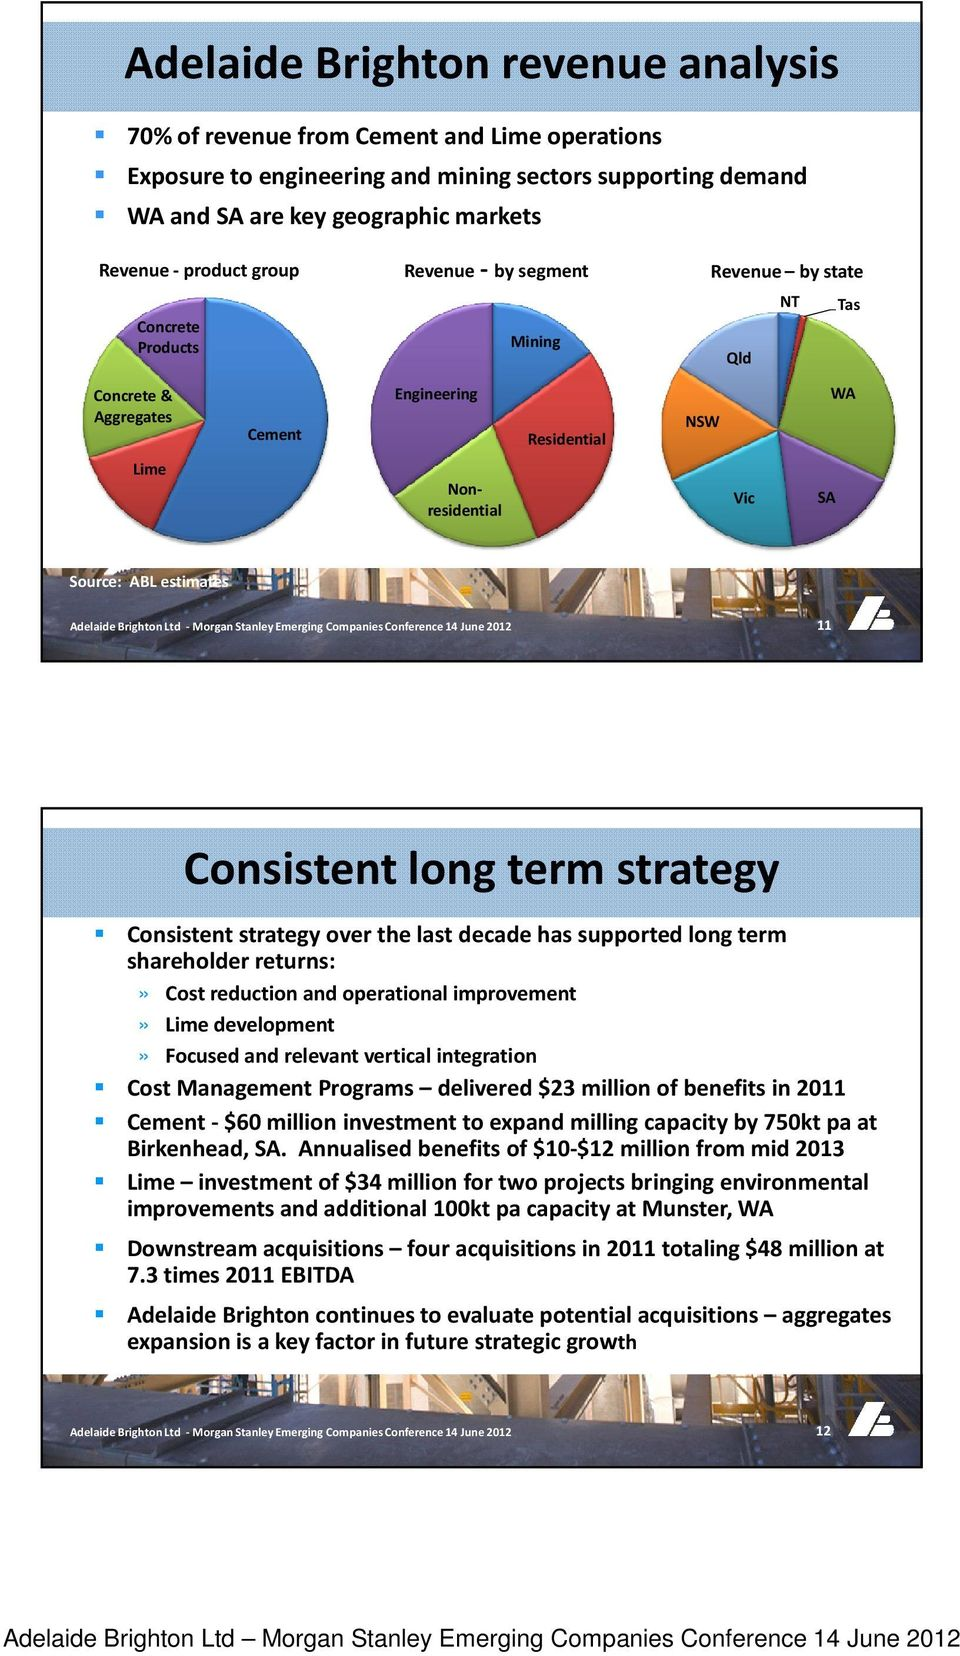 Consistent long term strategy Consistent strategy over the last decade has supported long term shareholder returns:» Cost reduction and operational improvement» Lime development» Focused and relevant